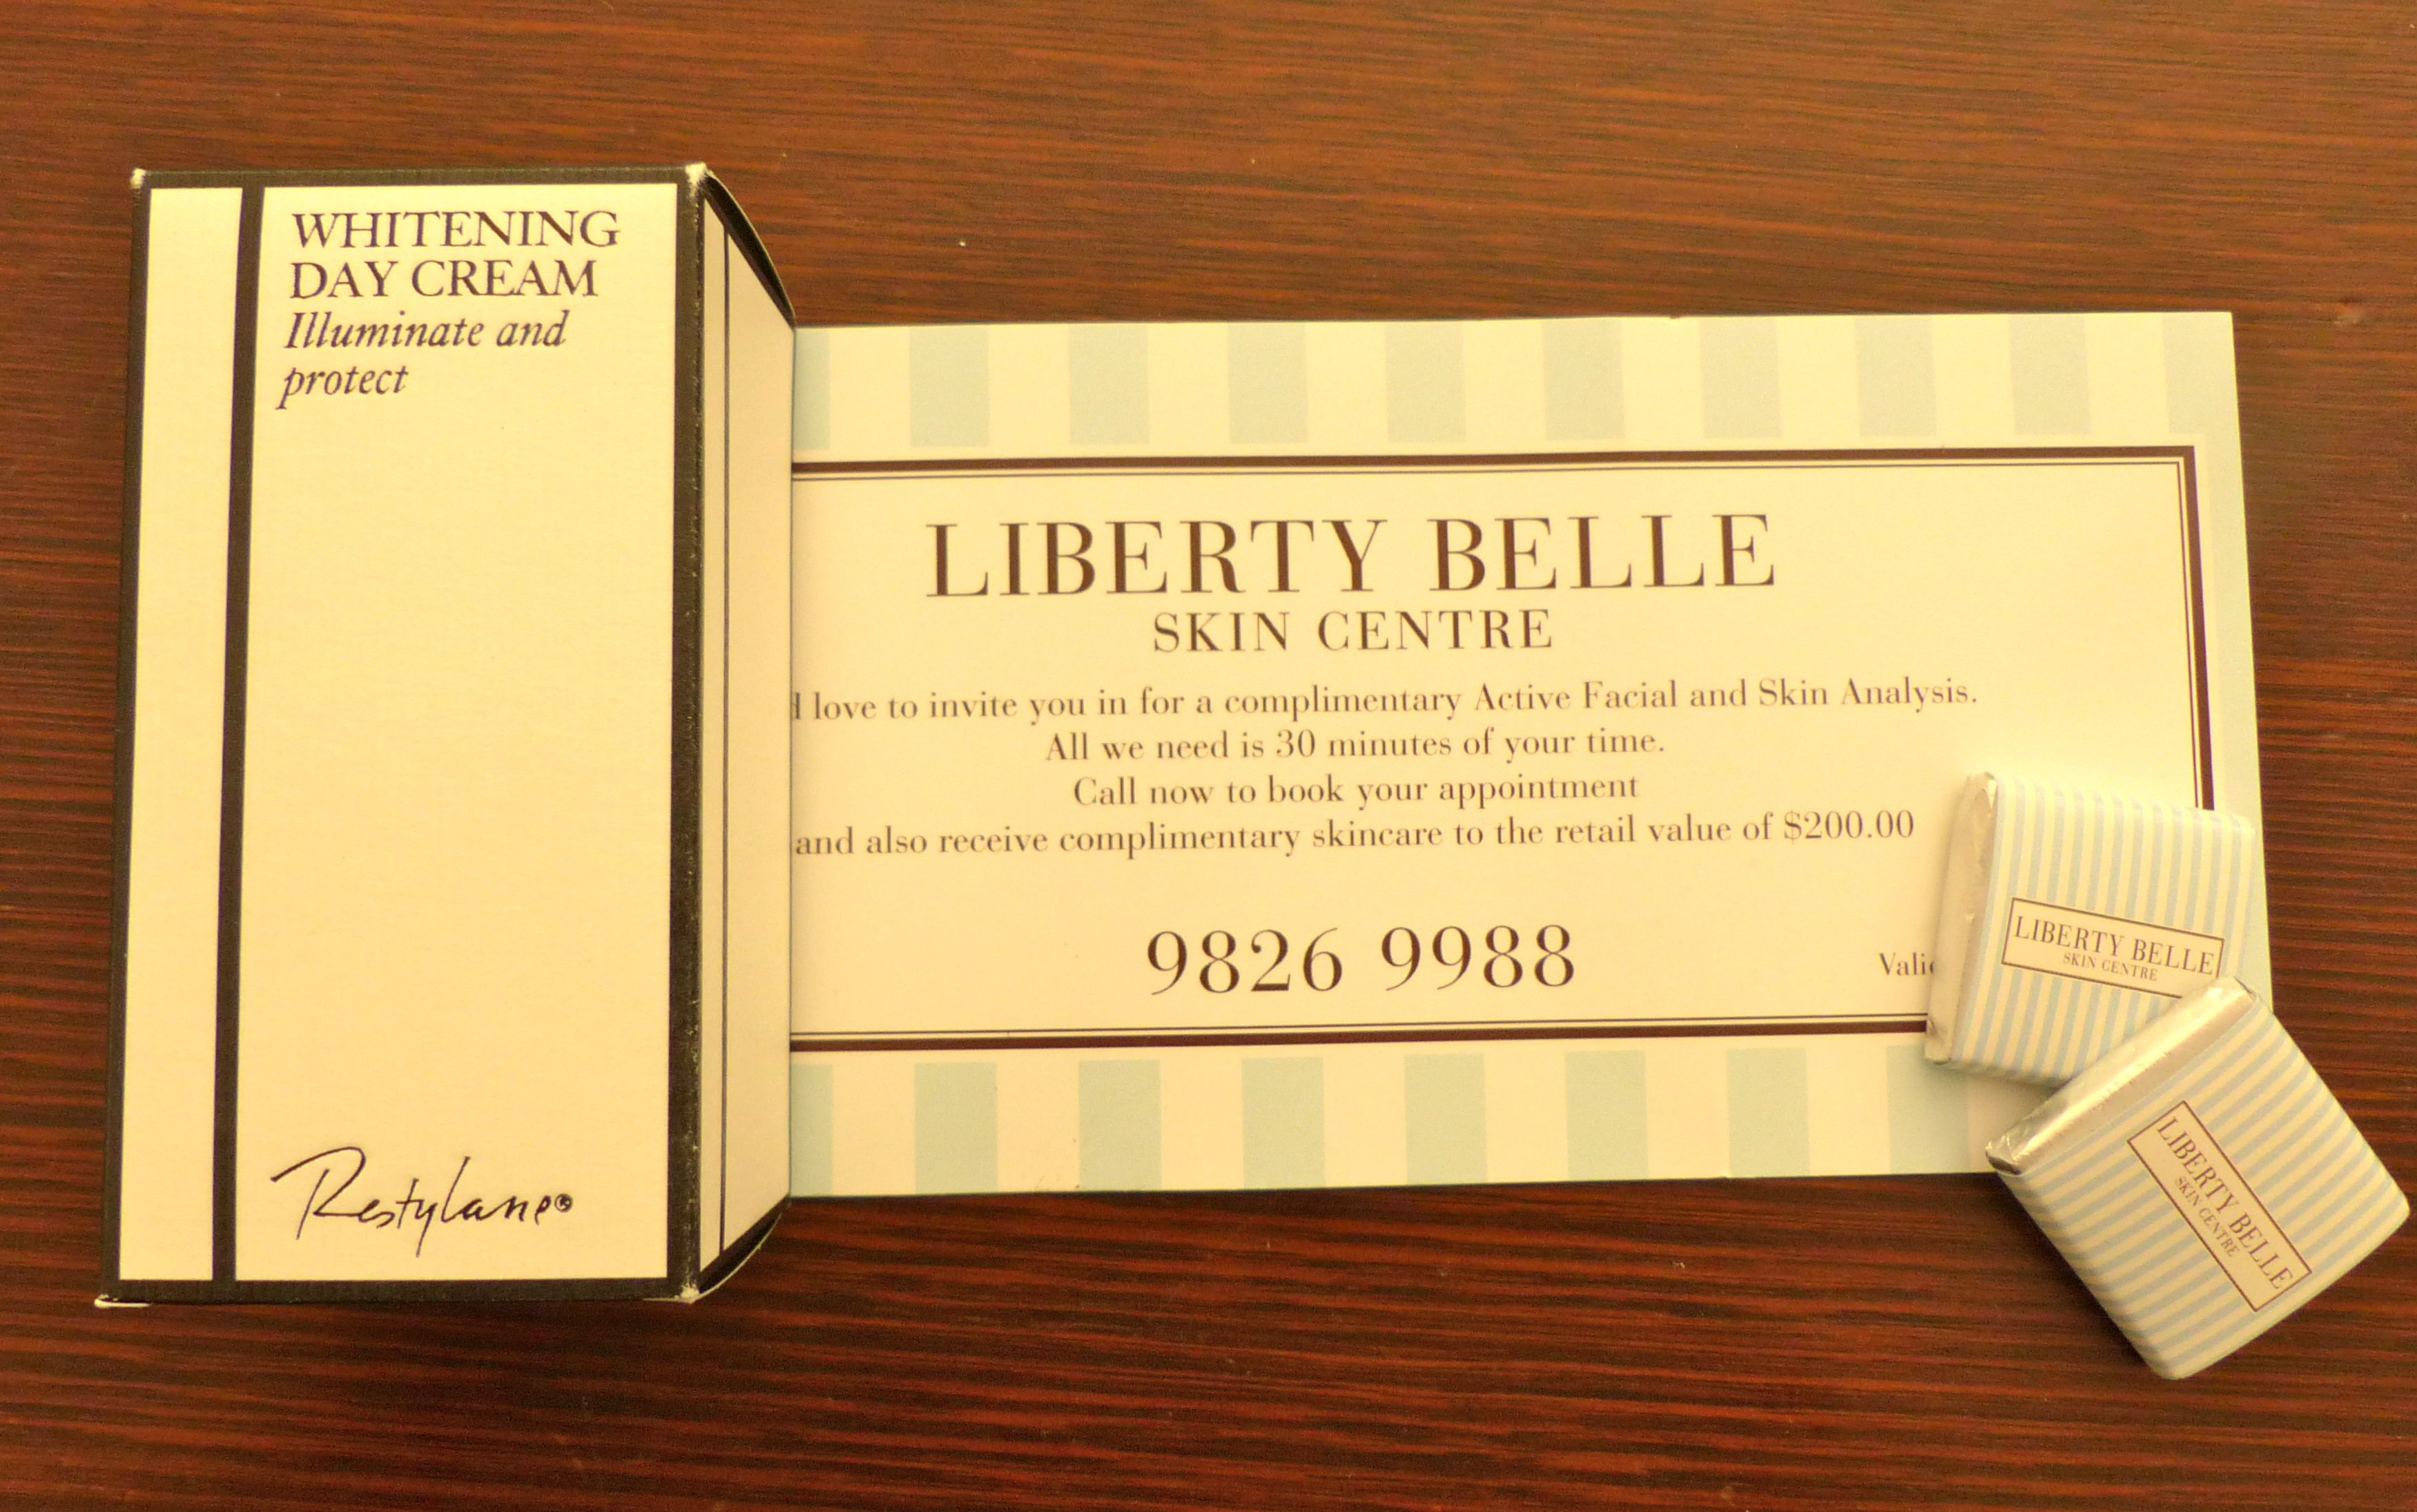 Whitening cream and skin evaluation voucher from Liberty Belle